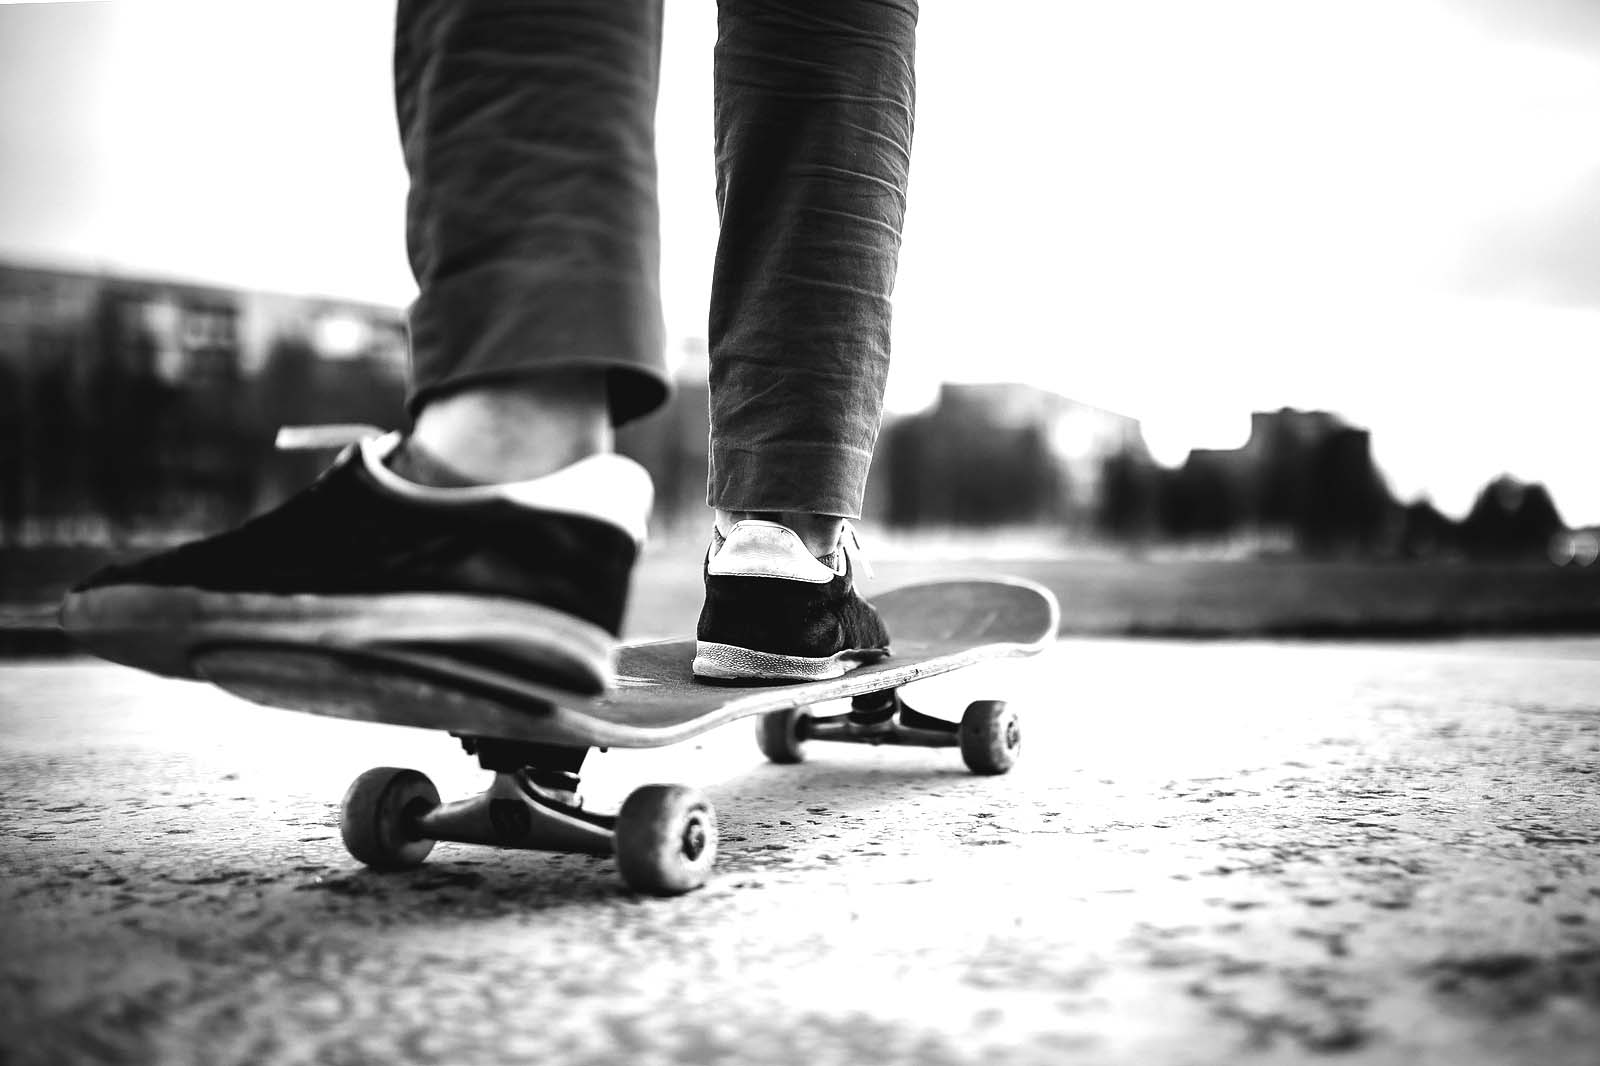 Waterspot: Surfing's little brother? Skateboarding